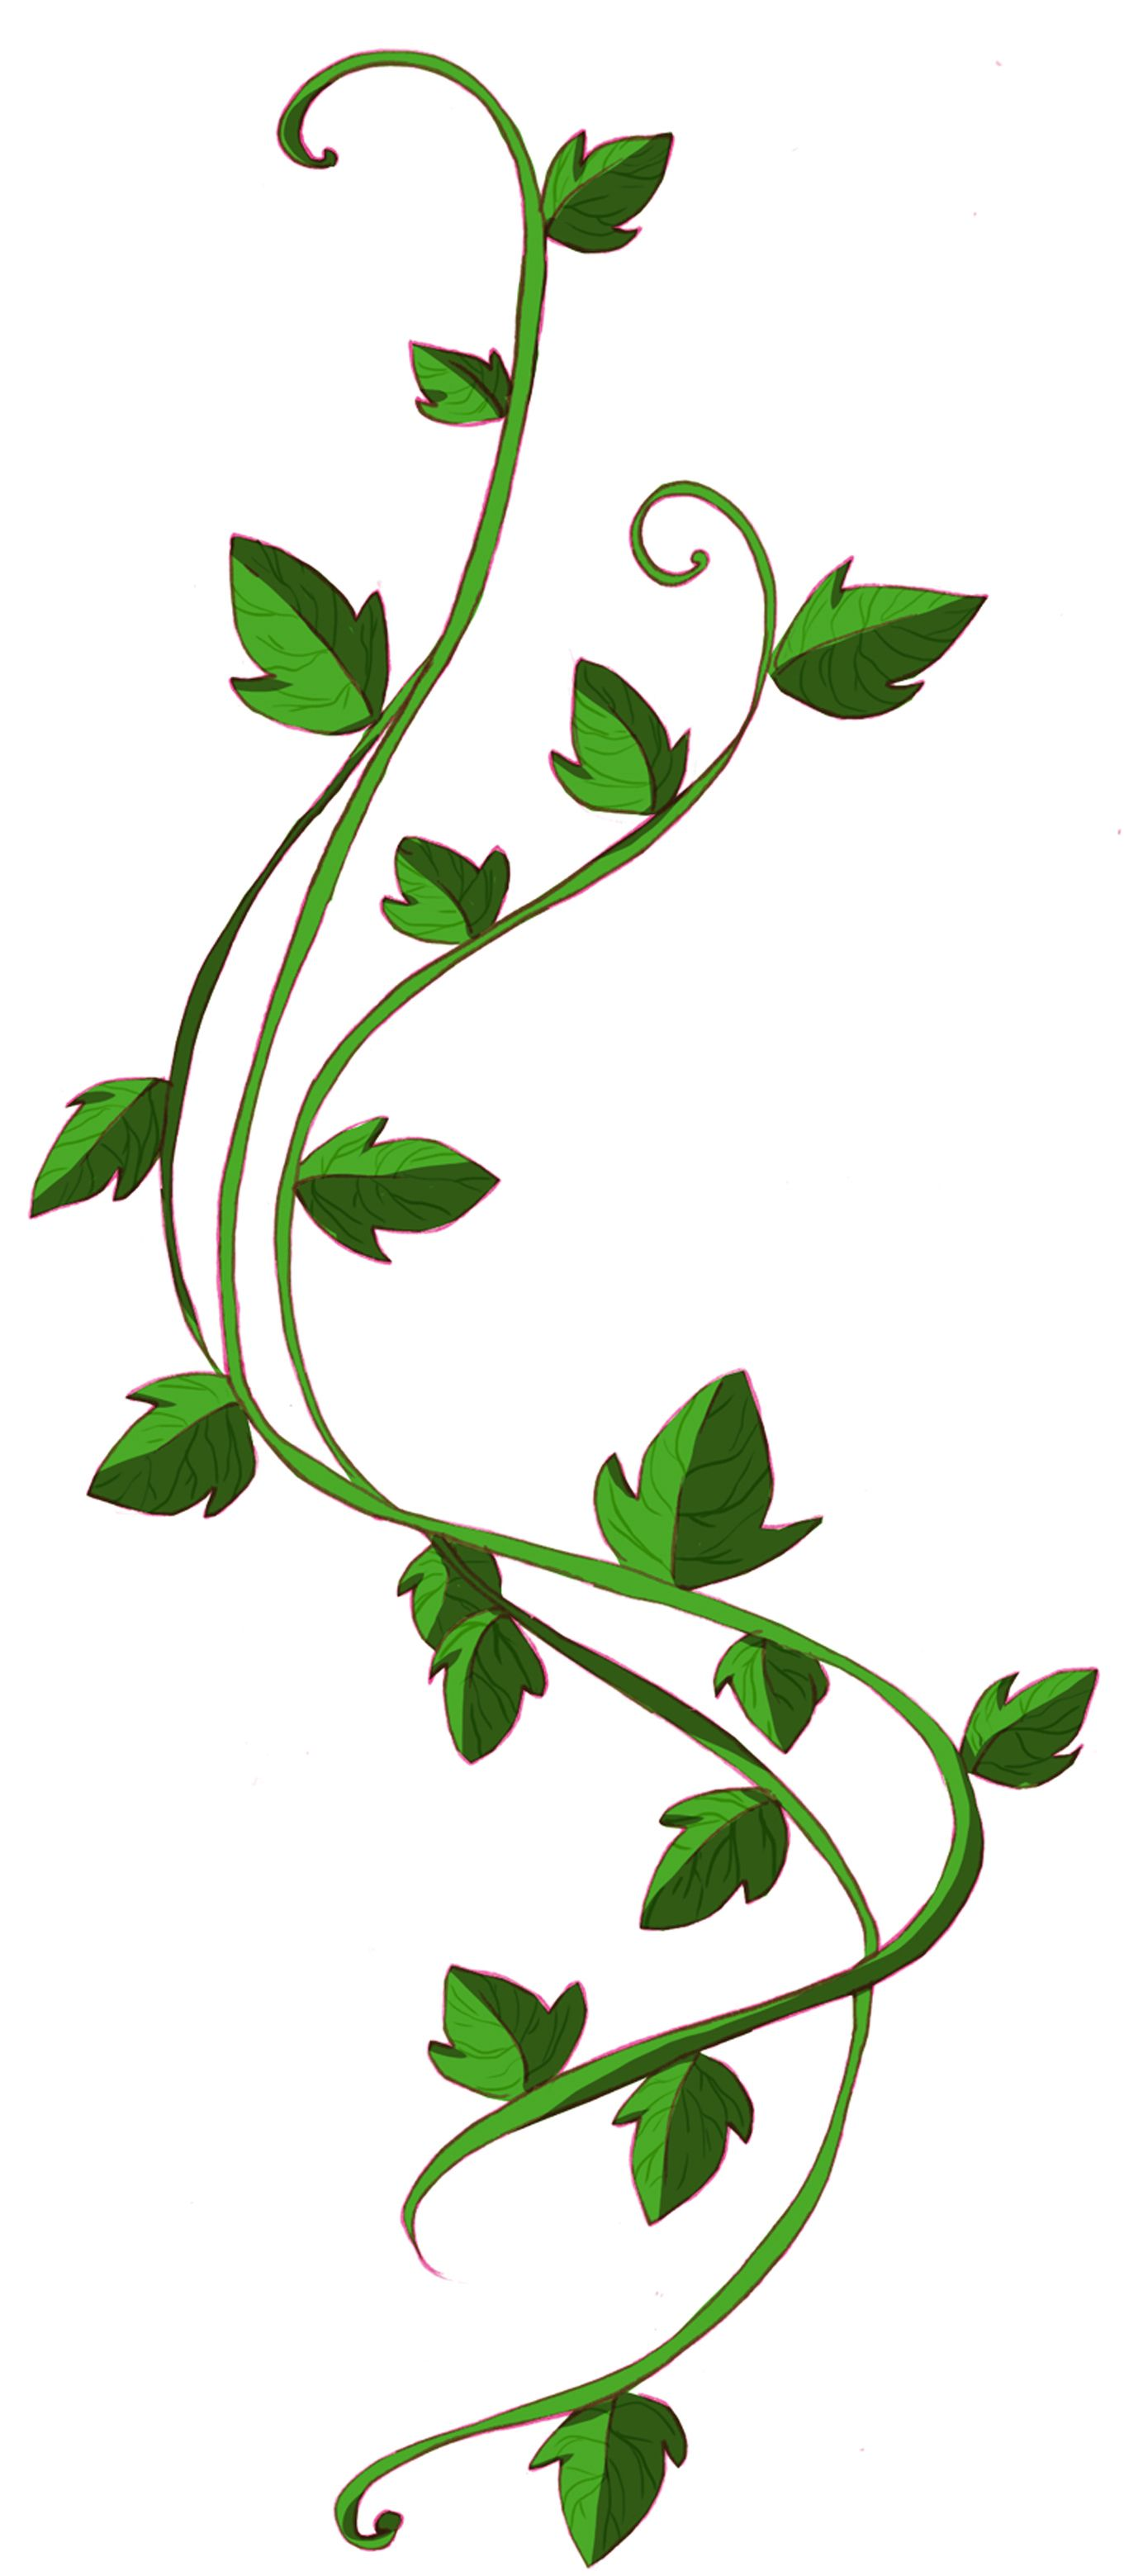 Vines clipart poison ivy. Pin by christine ray